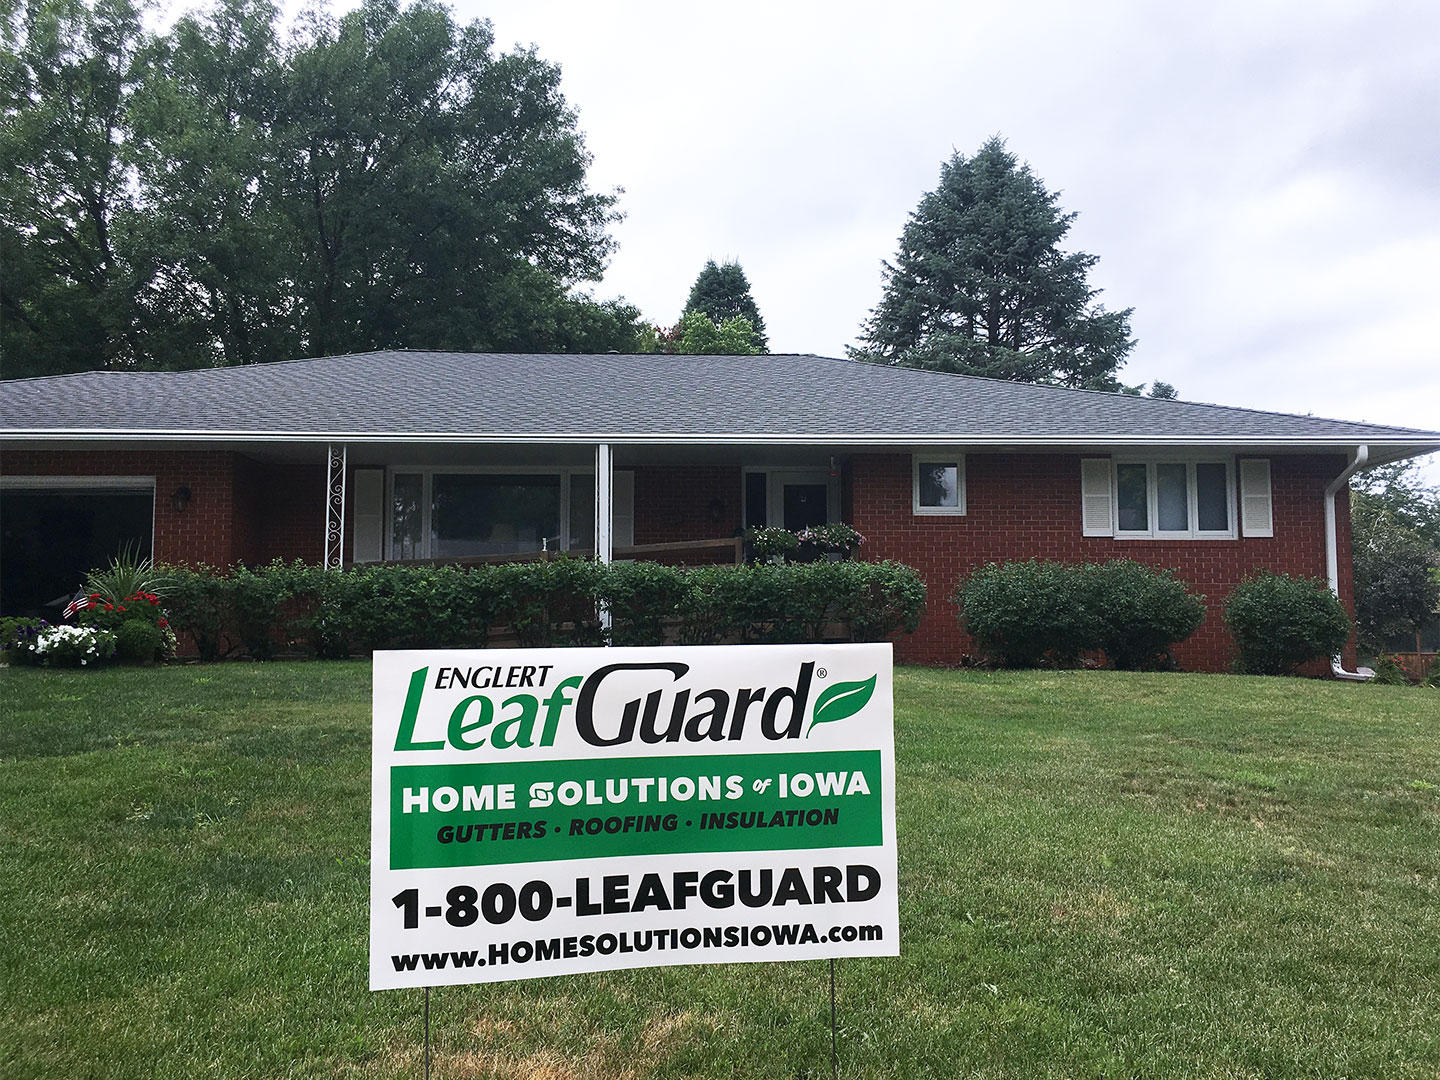 Harriet and his wife's Marshalltown, IA home is now safeguarded with GAF® roofing shingles and LeafGuard® Brand Gutters.